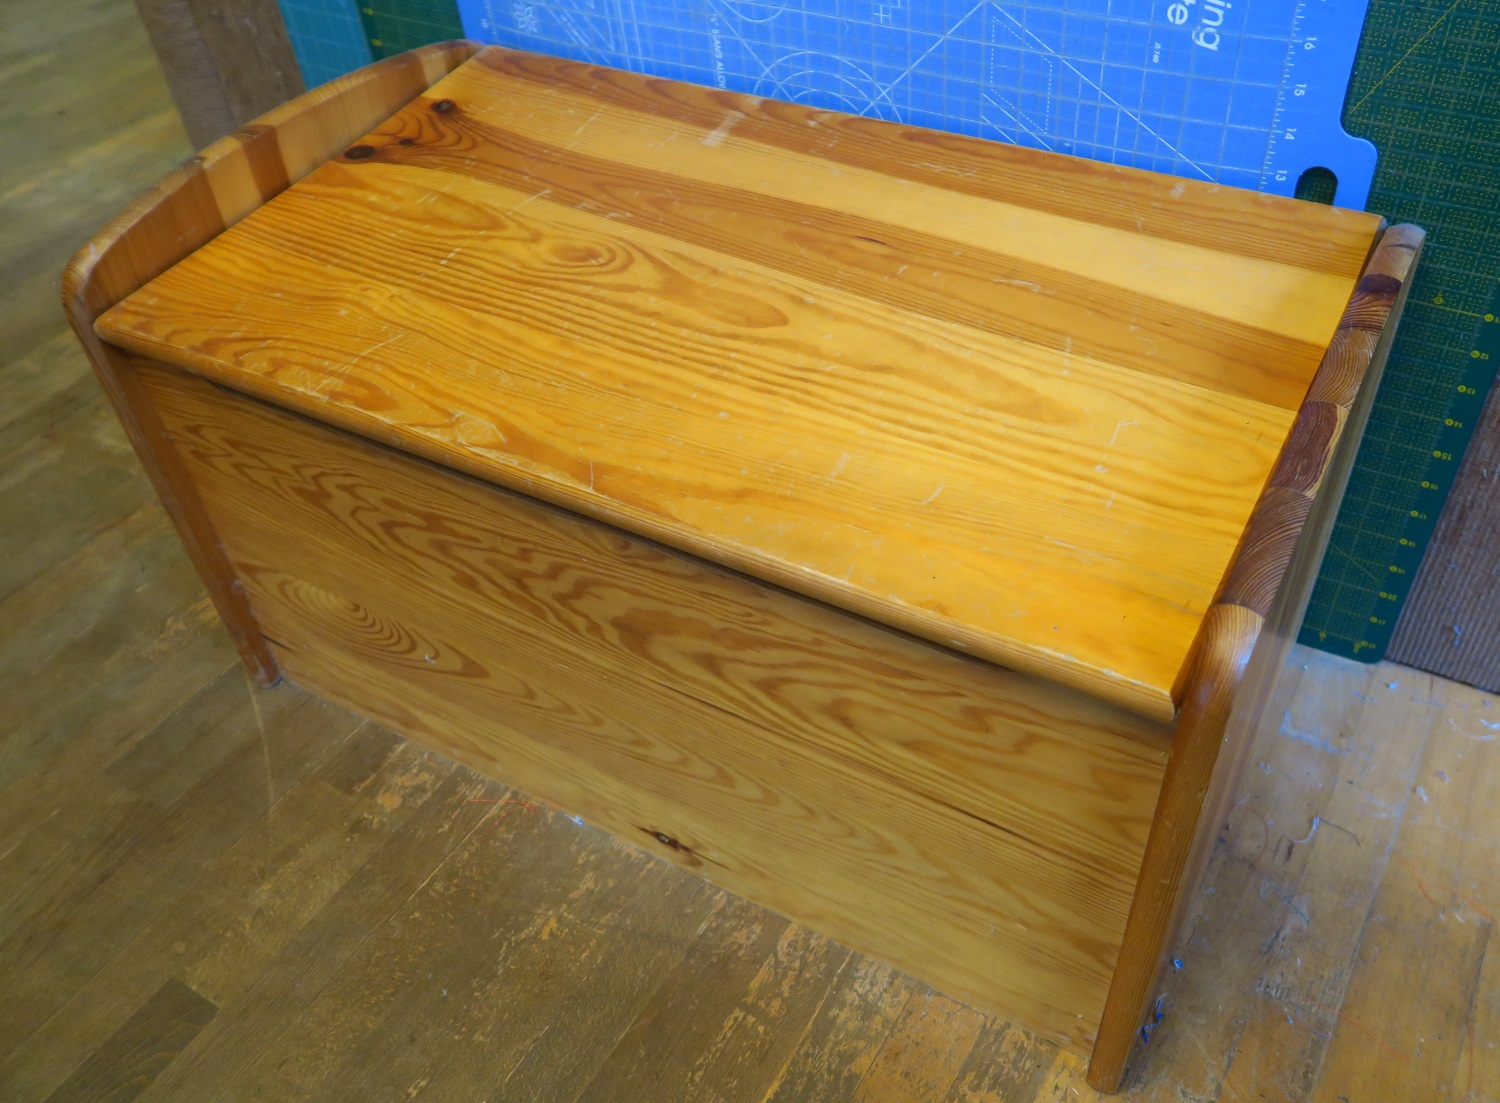 """This is the wooden chest that held the strips - I had it filled with """"stuff"""" that was then forgotten, or sort of forgotten about. I have since cleaned it out and put other stuff in there!"""